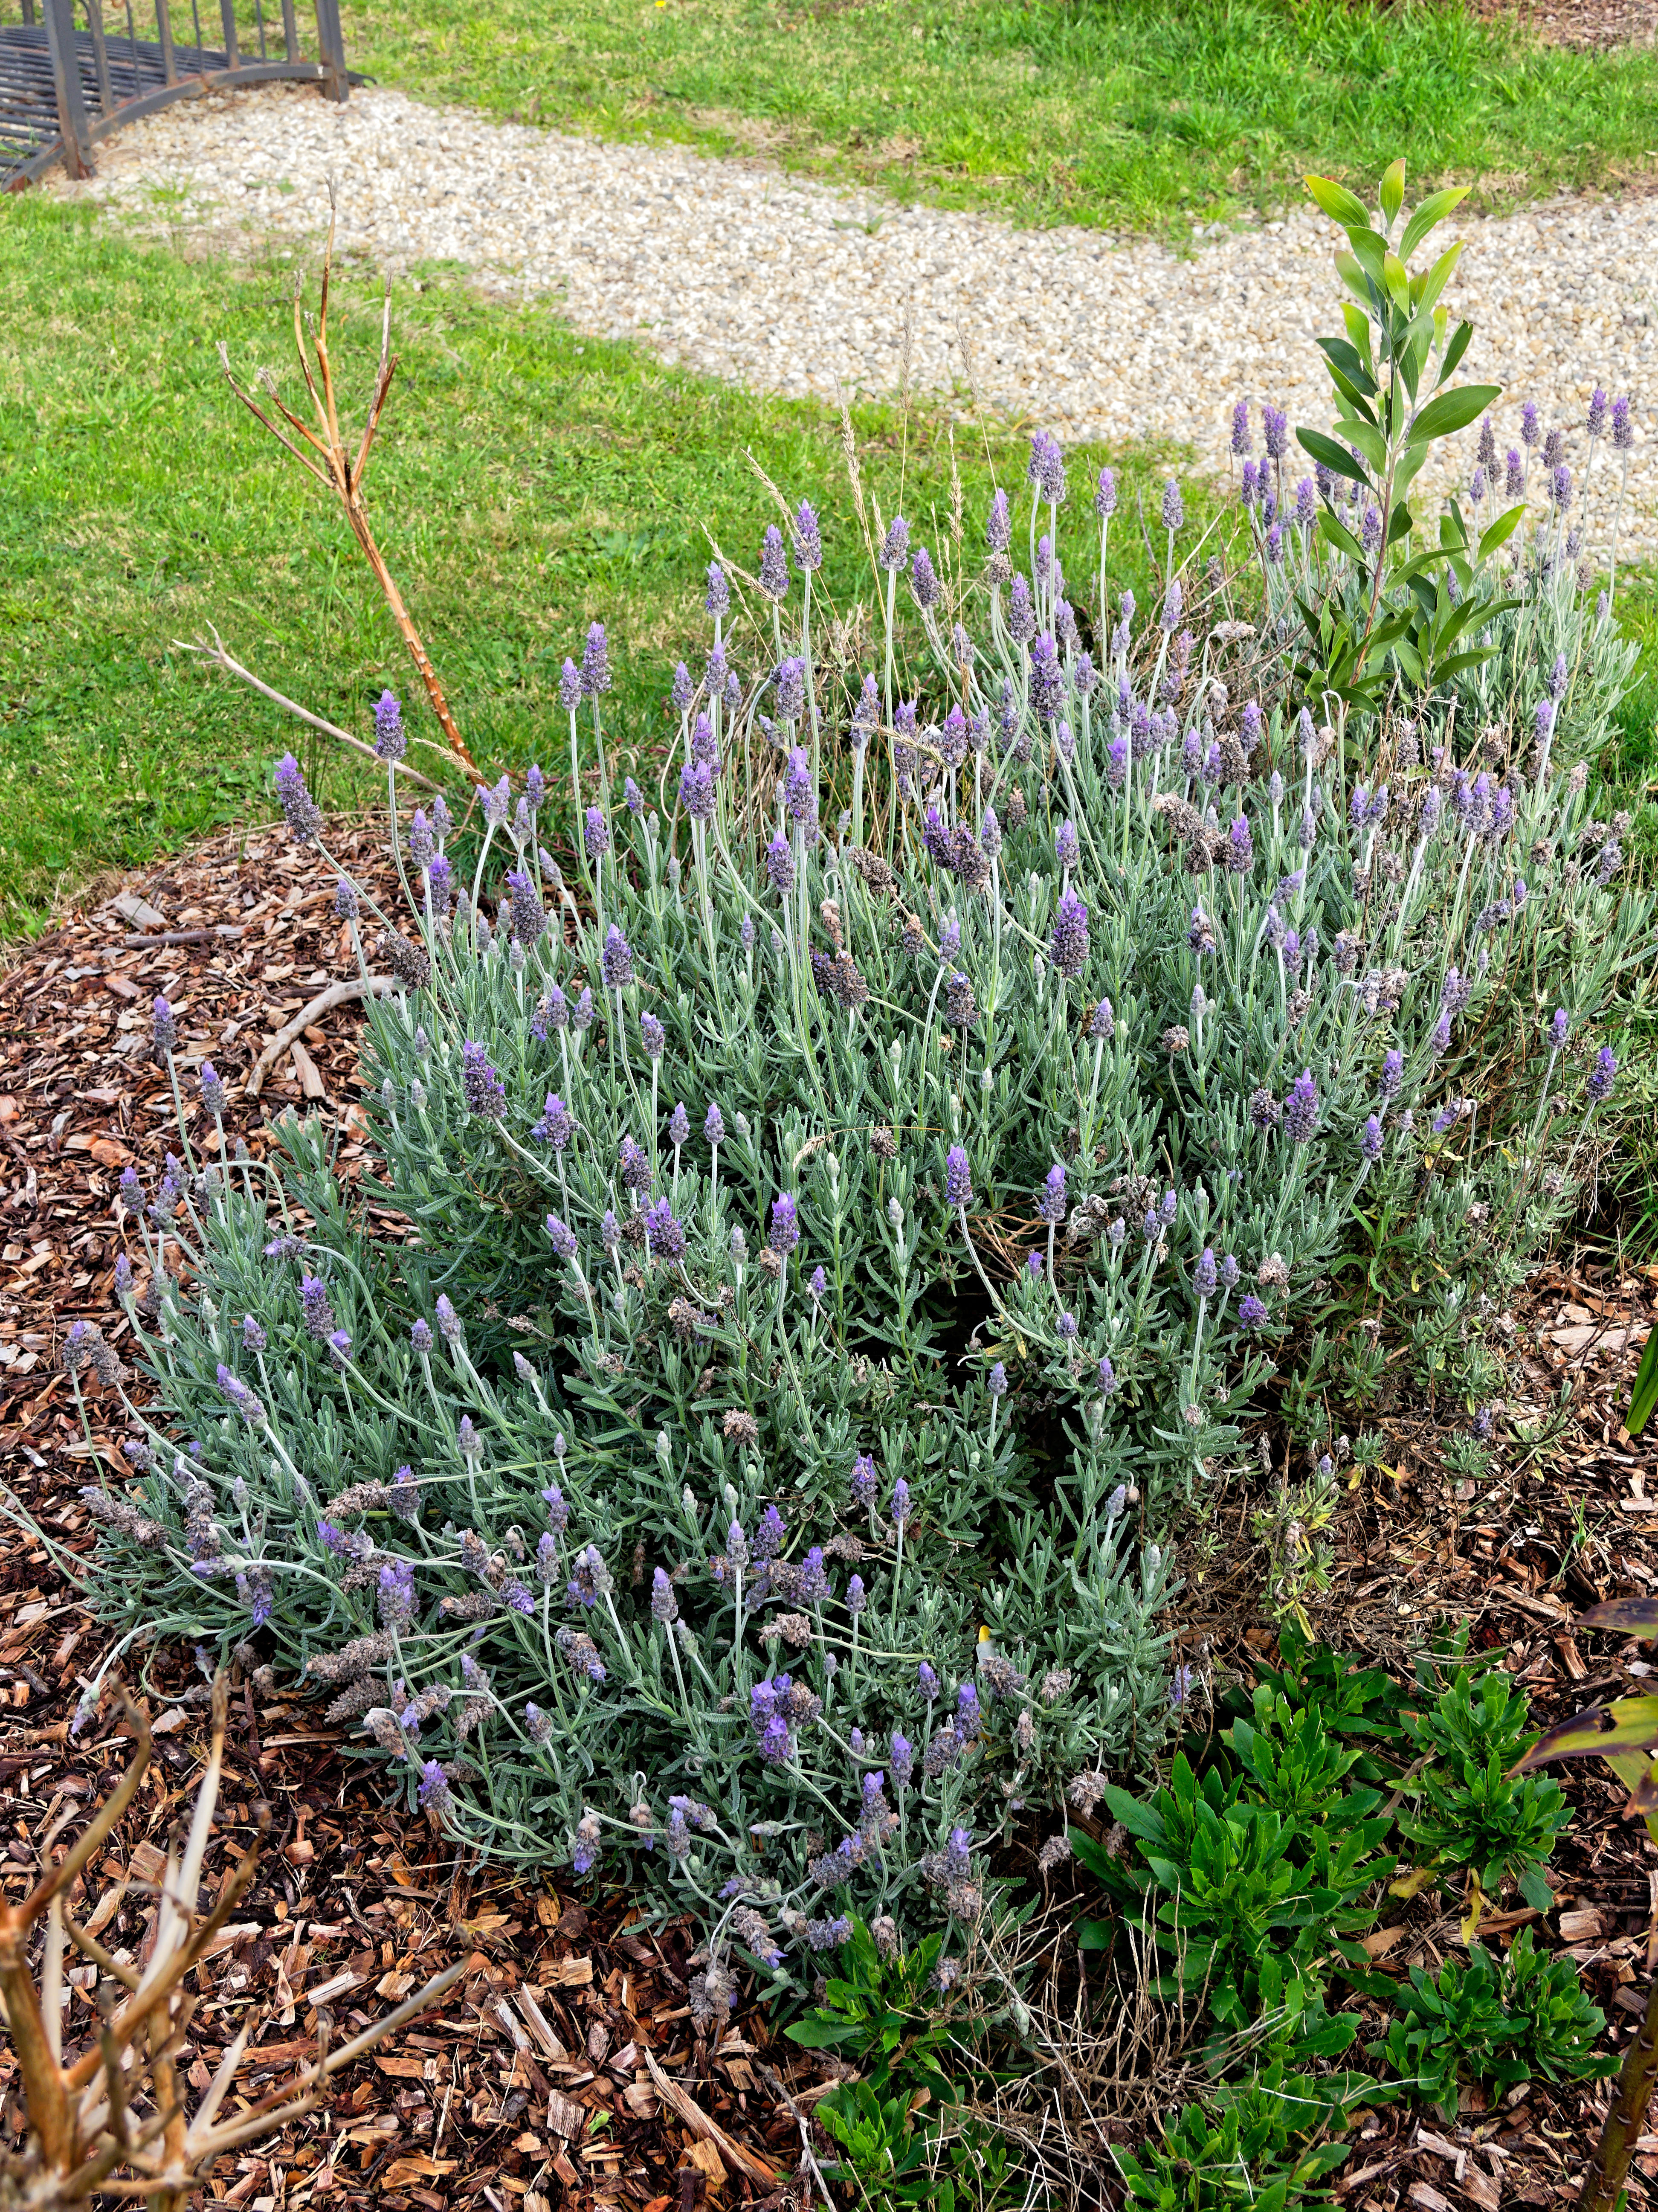 This should be Lavender-1.jpeg.  Is it missing?